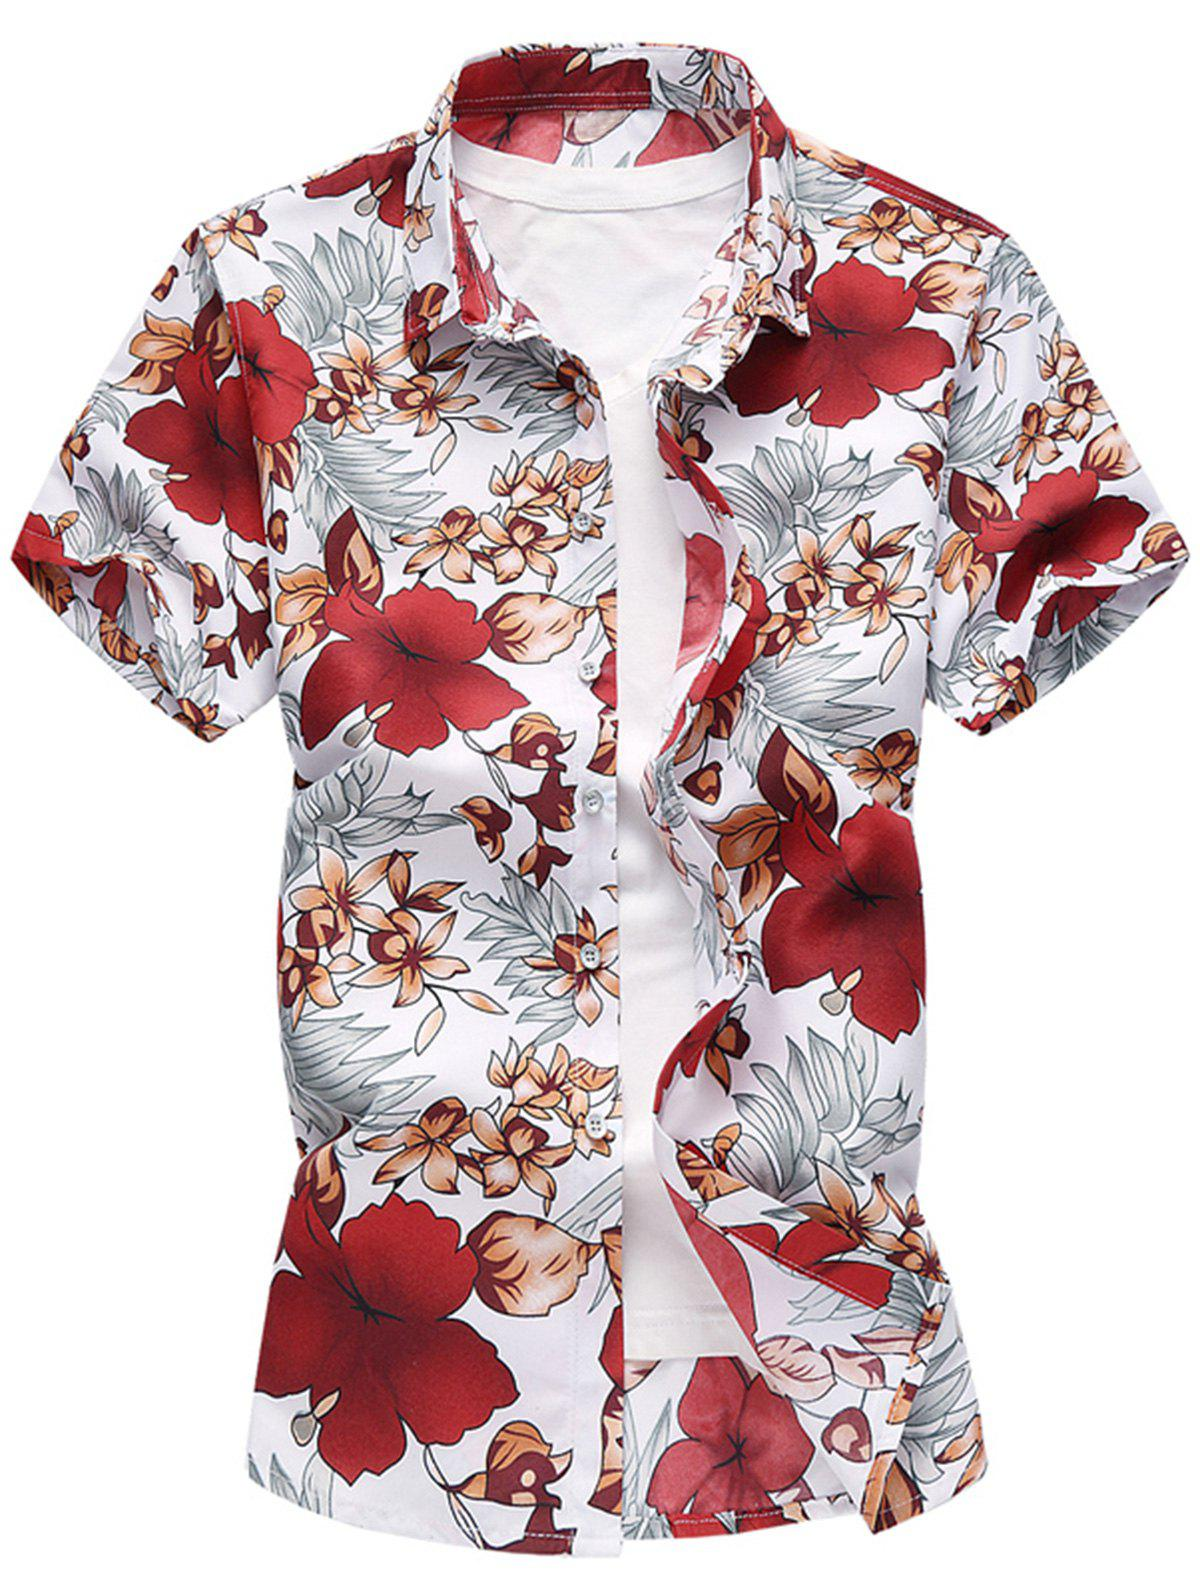 Shops Casual Leaves Floral Pattern Short Sleeve Shirt